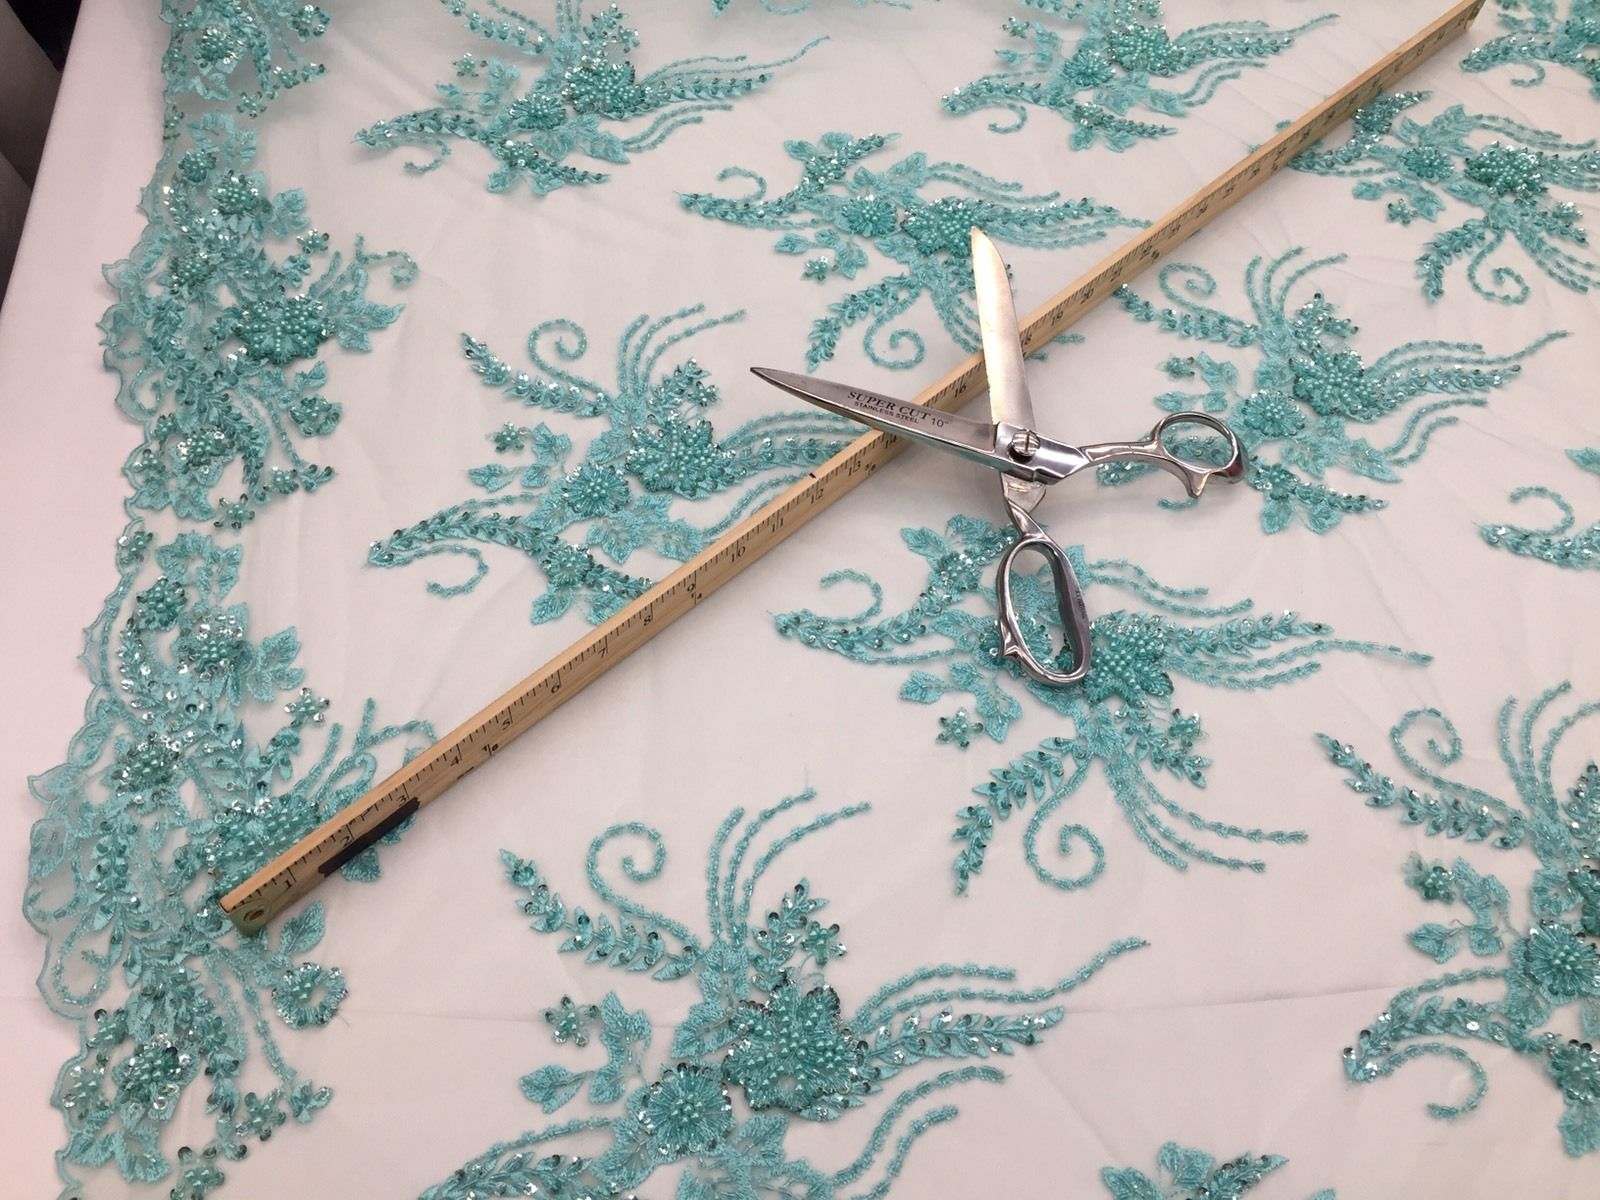 Mint French Design Embroider And Beaded On A Mesh Lace.Wedding/prom/Fabric.. - KINGDOM OF FABRICS